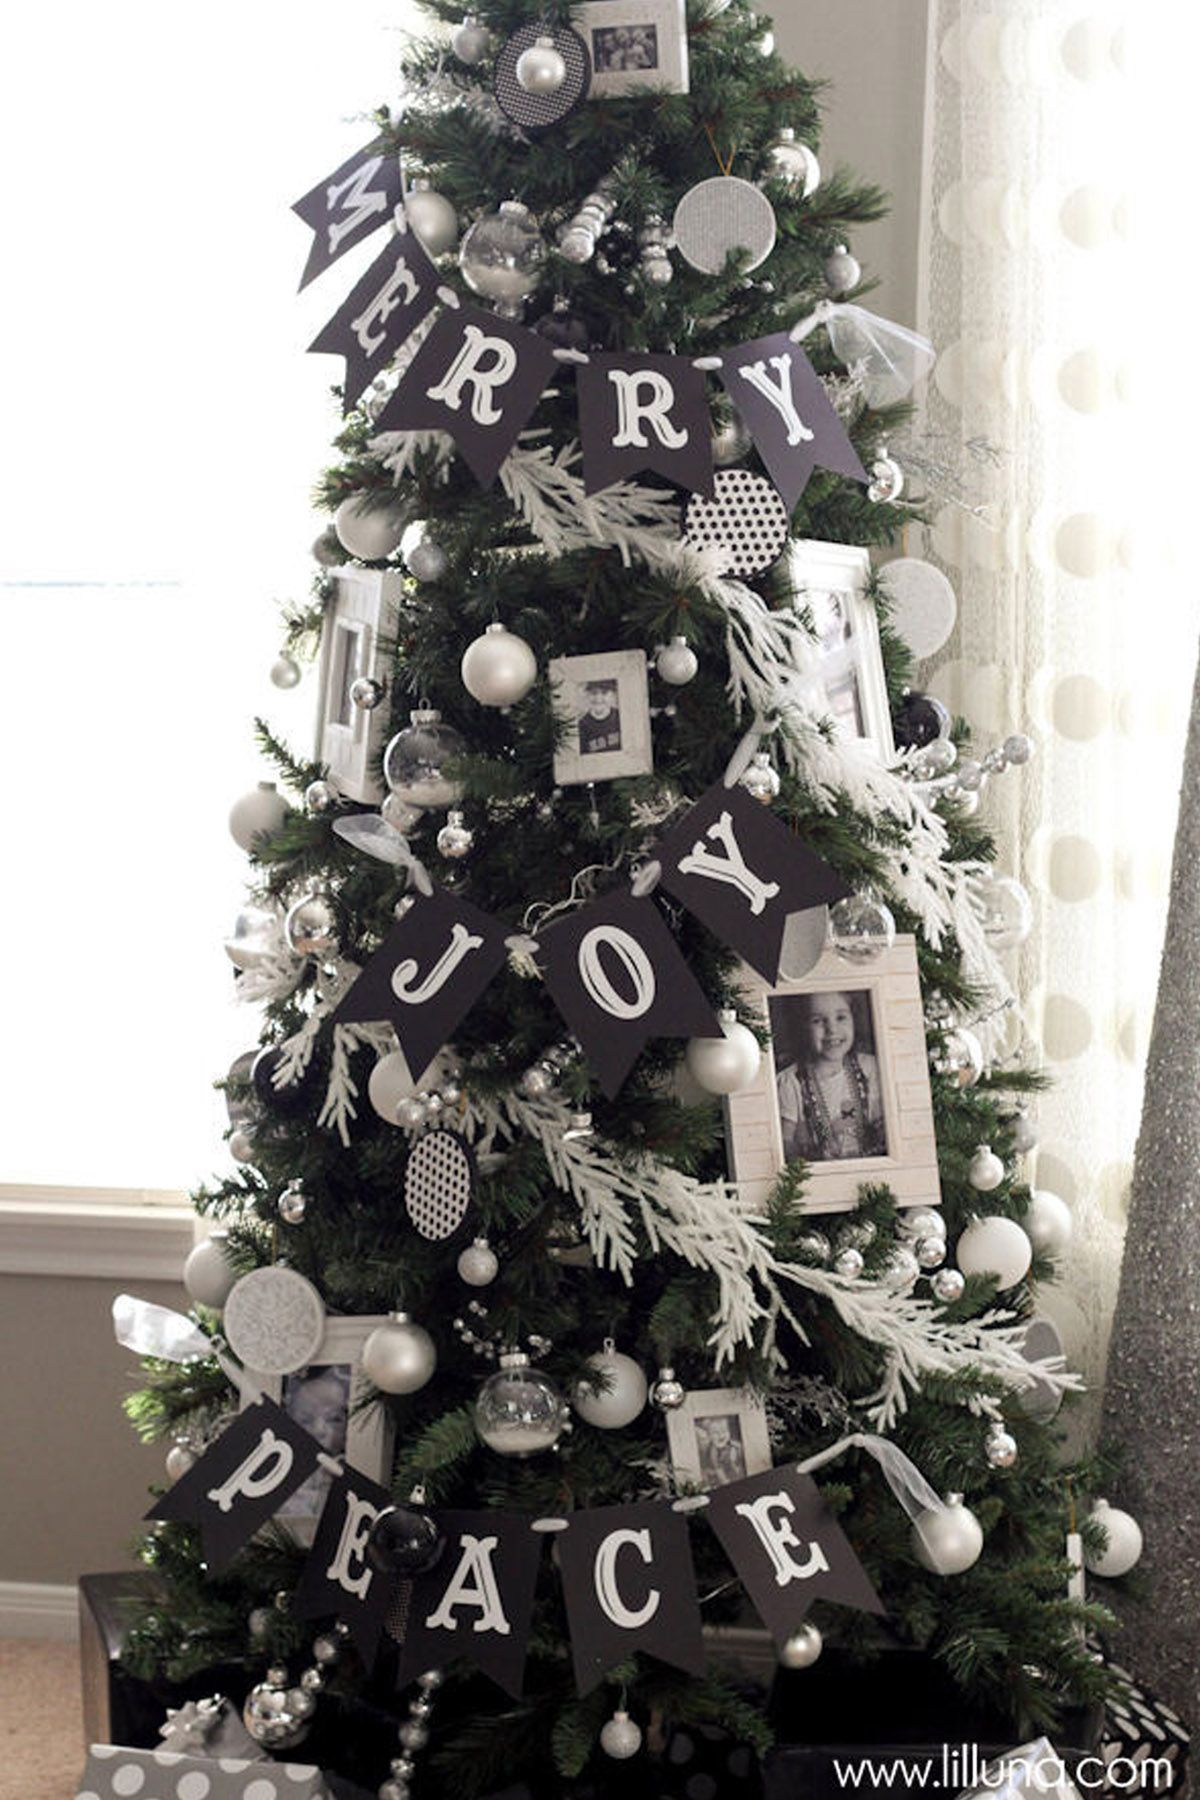 33 Unique Christmas Tree Decoration Ideas - Pictures of Decorated ...